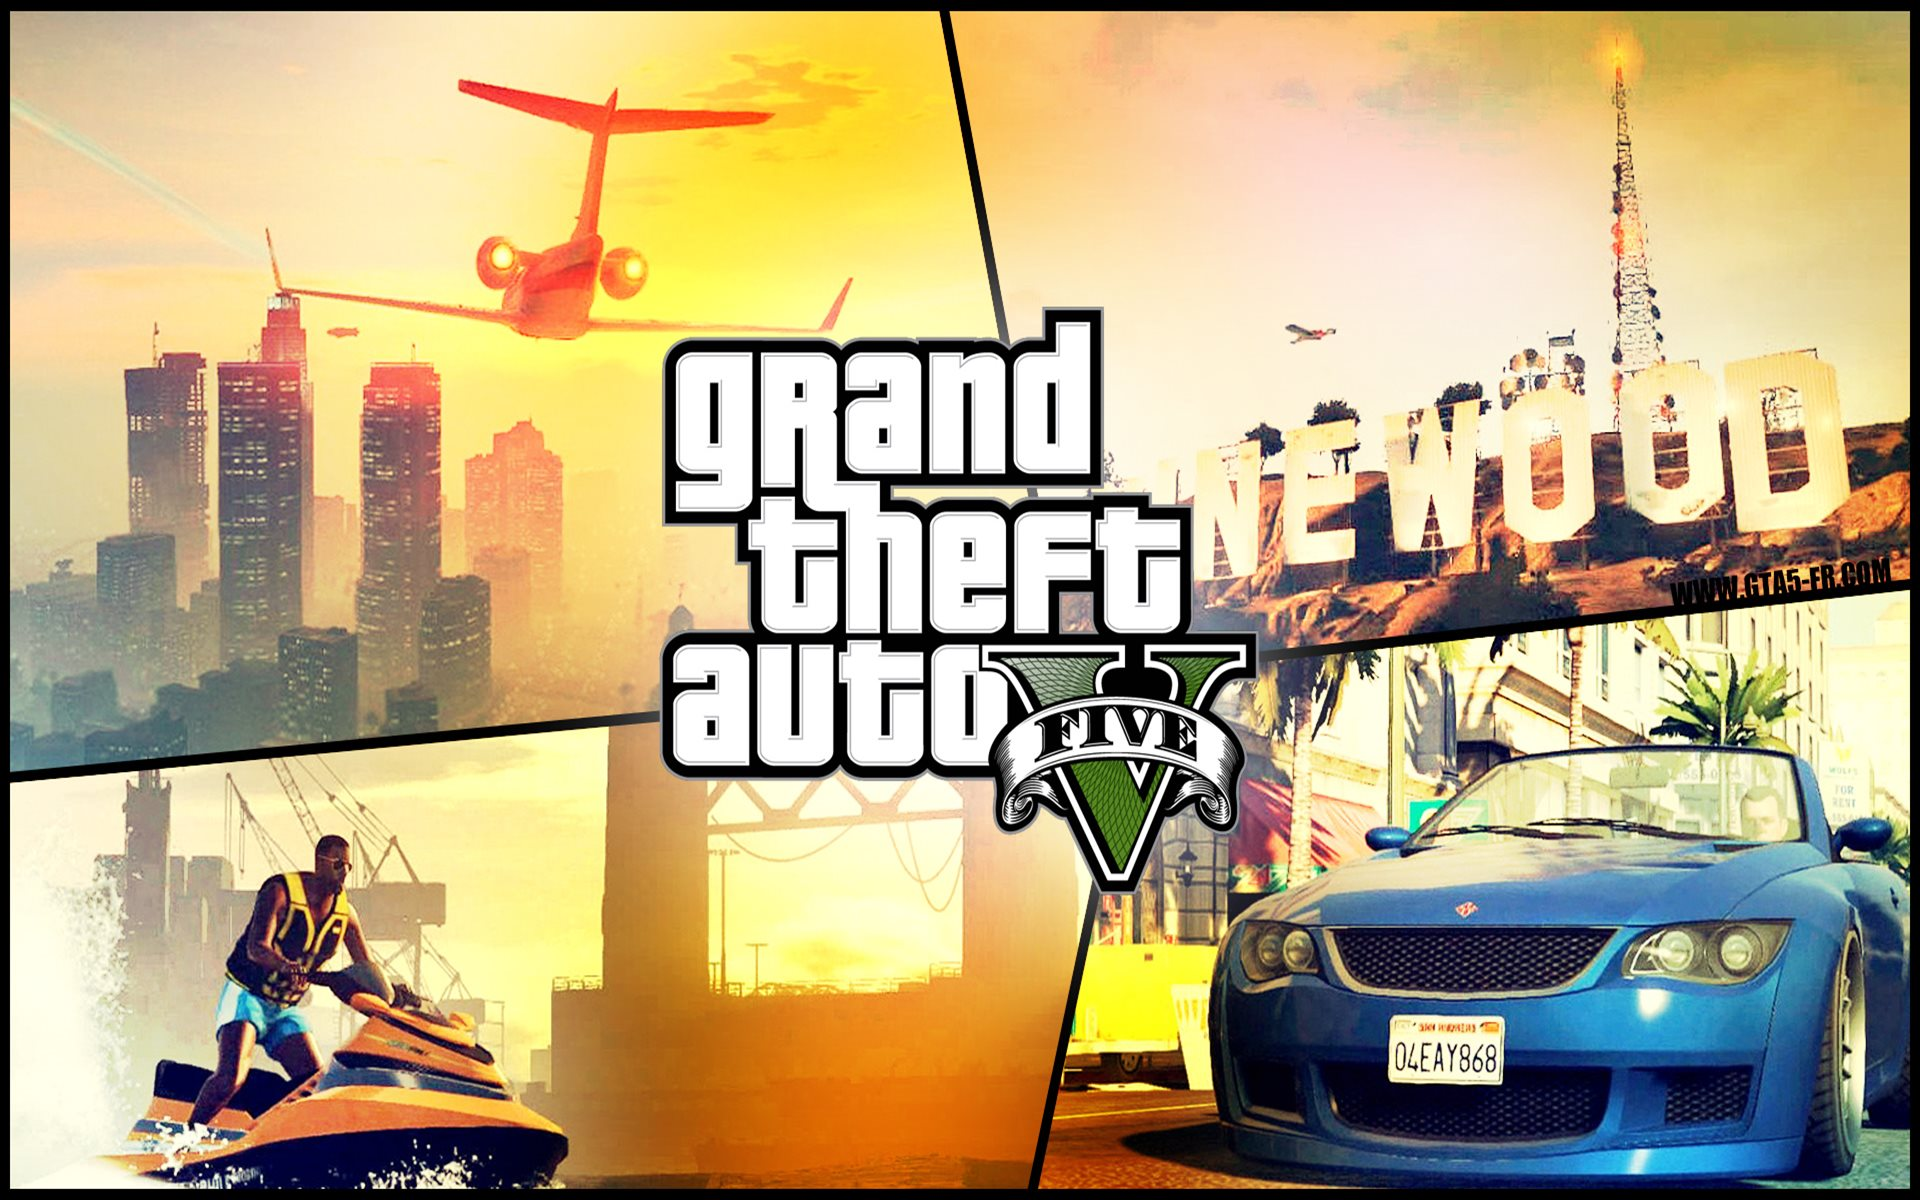 GTA 5 Download Grand Theft Auto 5 Game for PC 1920x1200